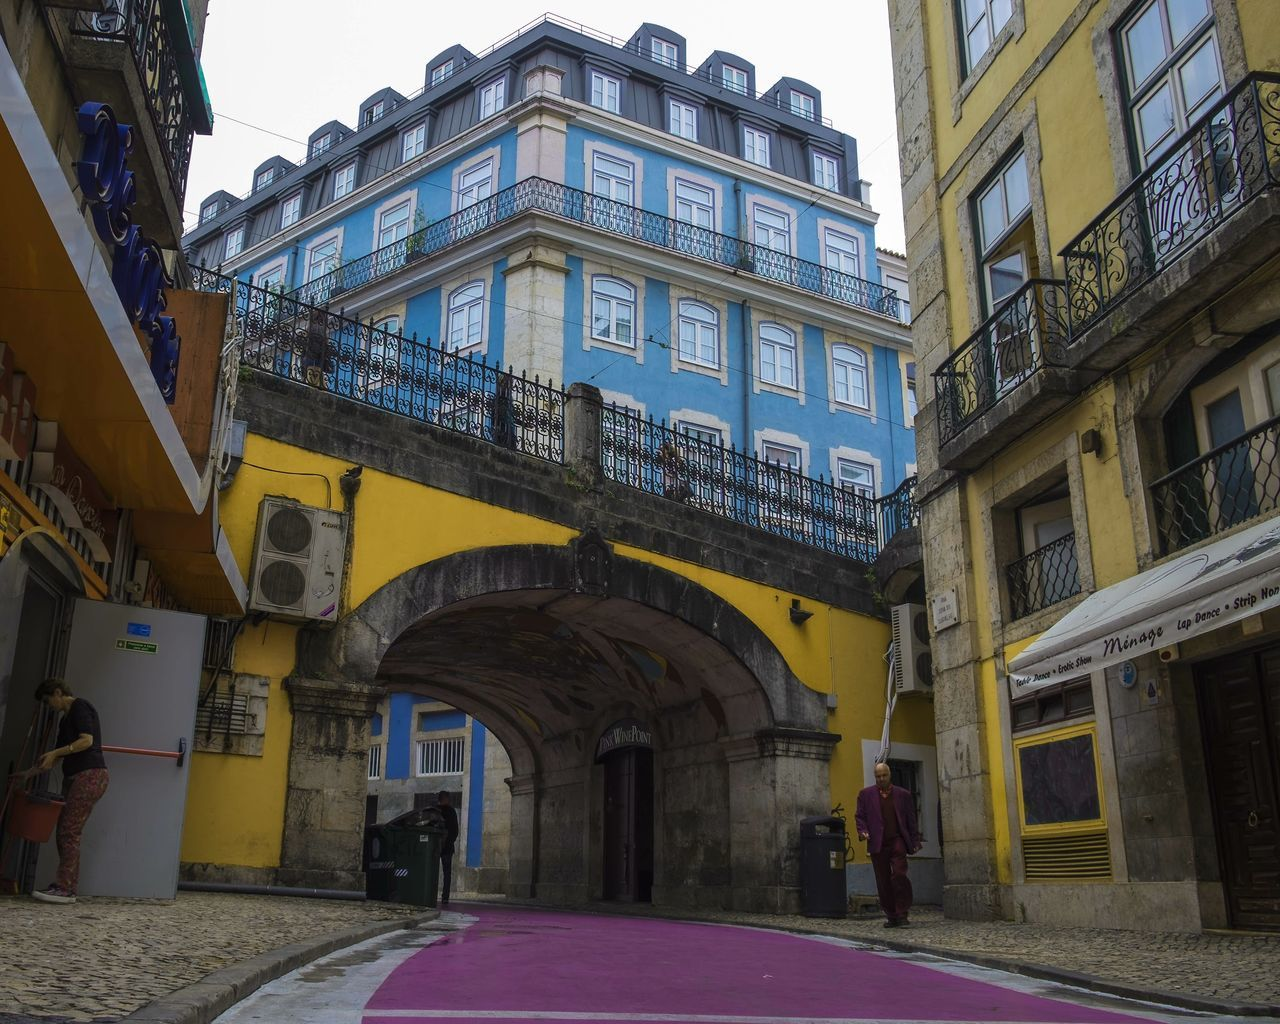 Street Streetphotography Colors Arch Downtown City Eyeemportugal EyeEmNewHere Pink History Taking Photos Old Architecture FUJIFILM X-T10 The Great Outdoors - 2017 EyeEm Awards The Street Photographer - 2017 EyeEm Awards